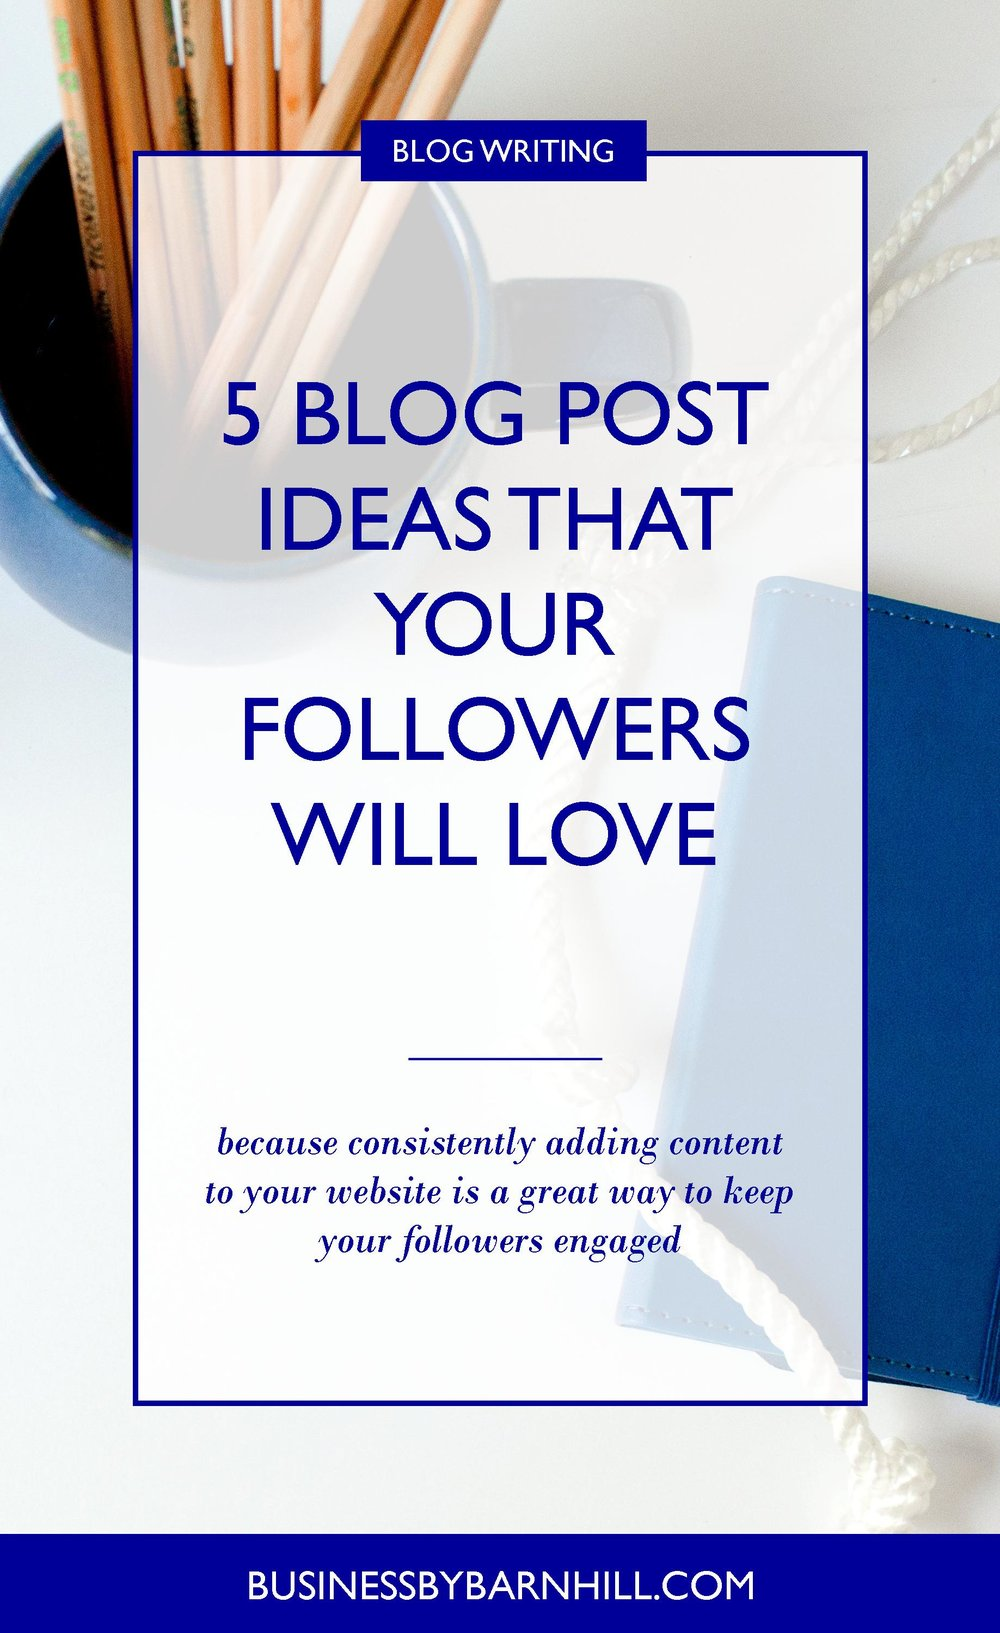 business by barnhill pinterest five blog post ideas that your followers will love.jpg